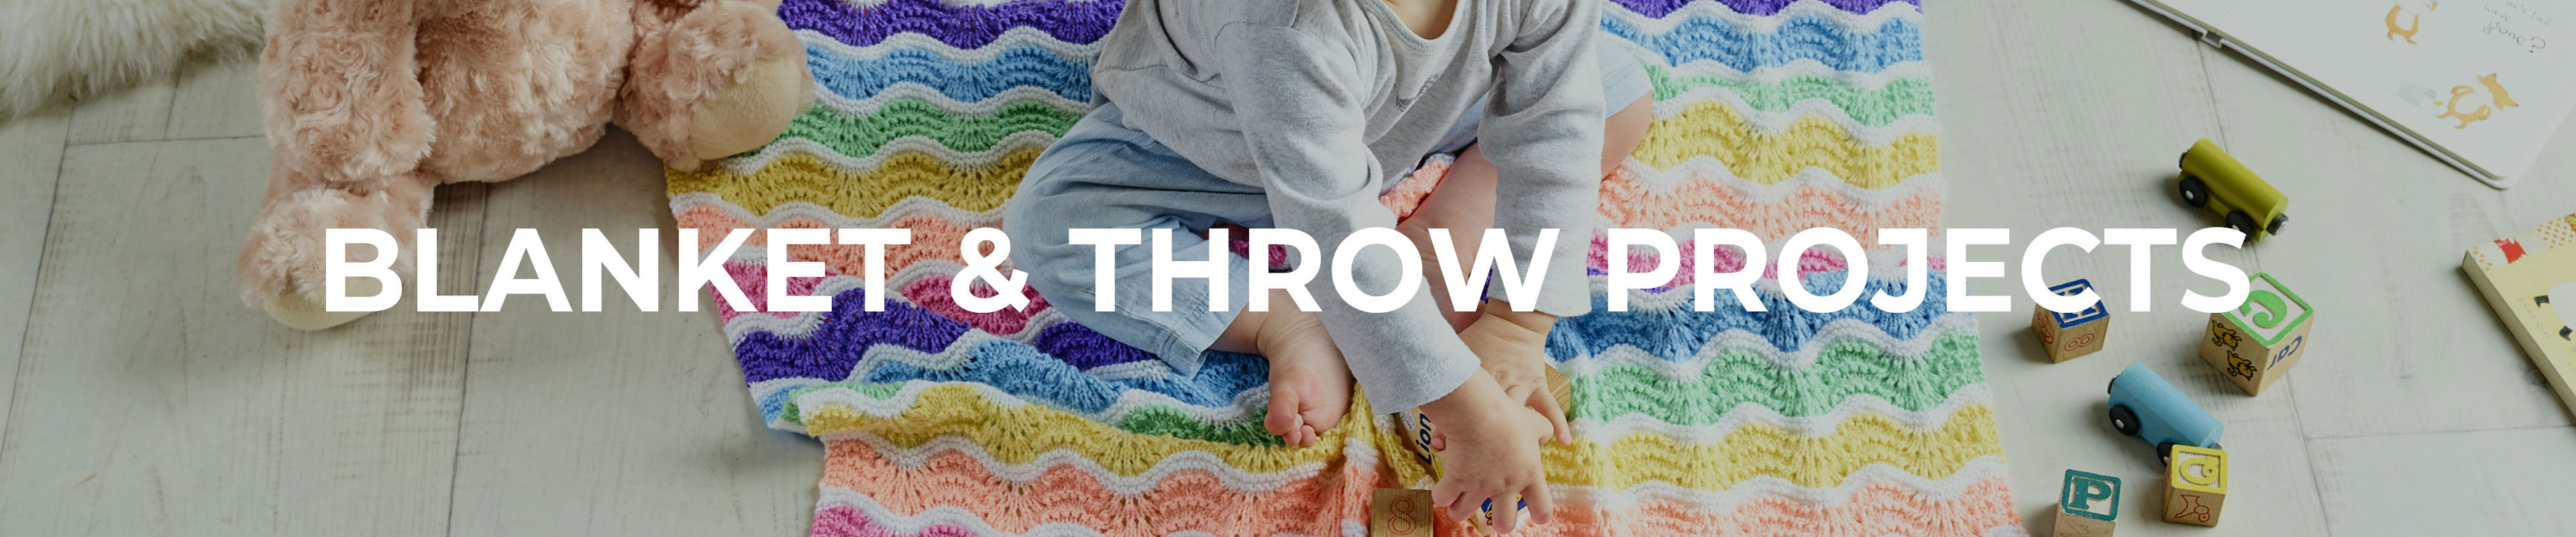 Blanket & Throw Projects